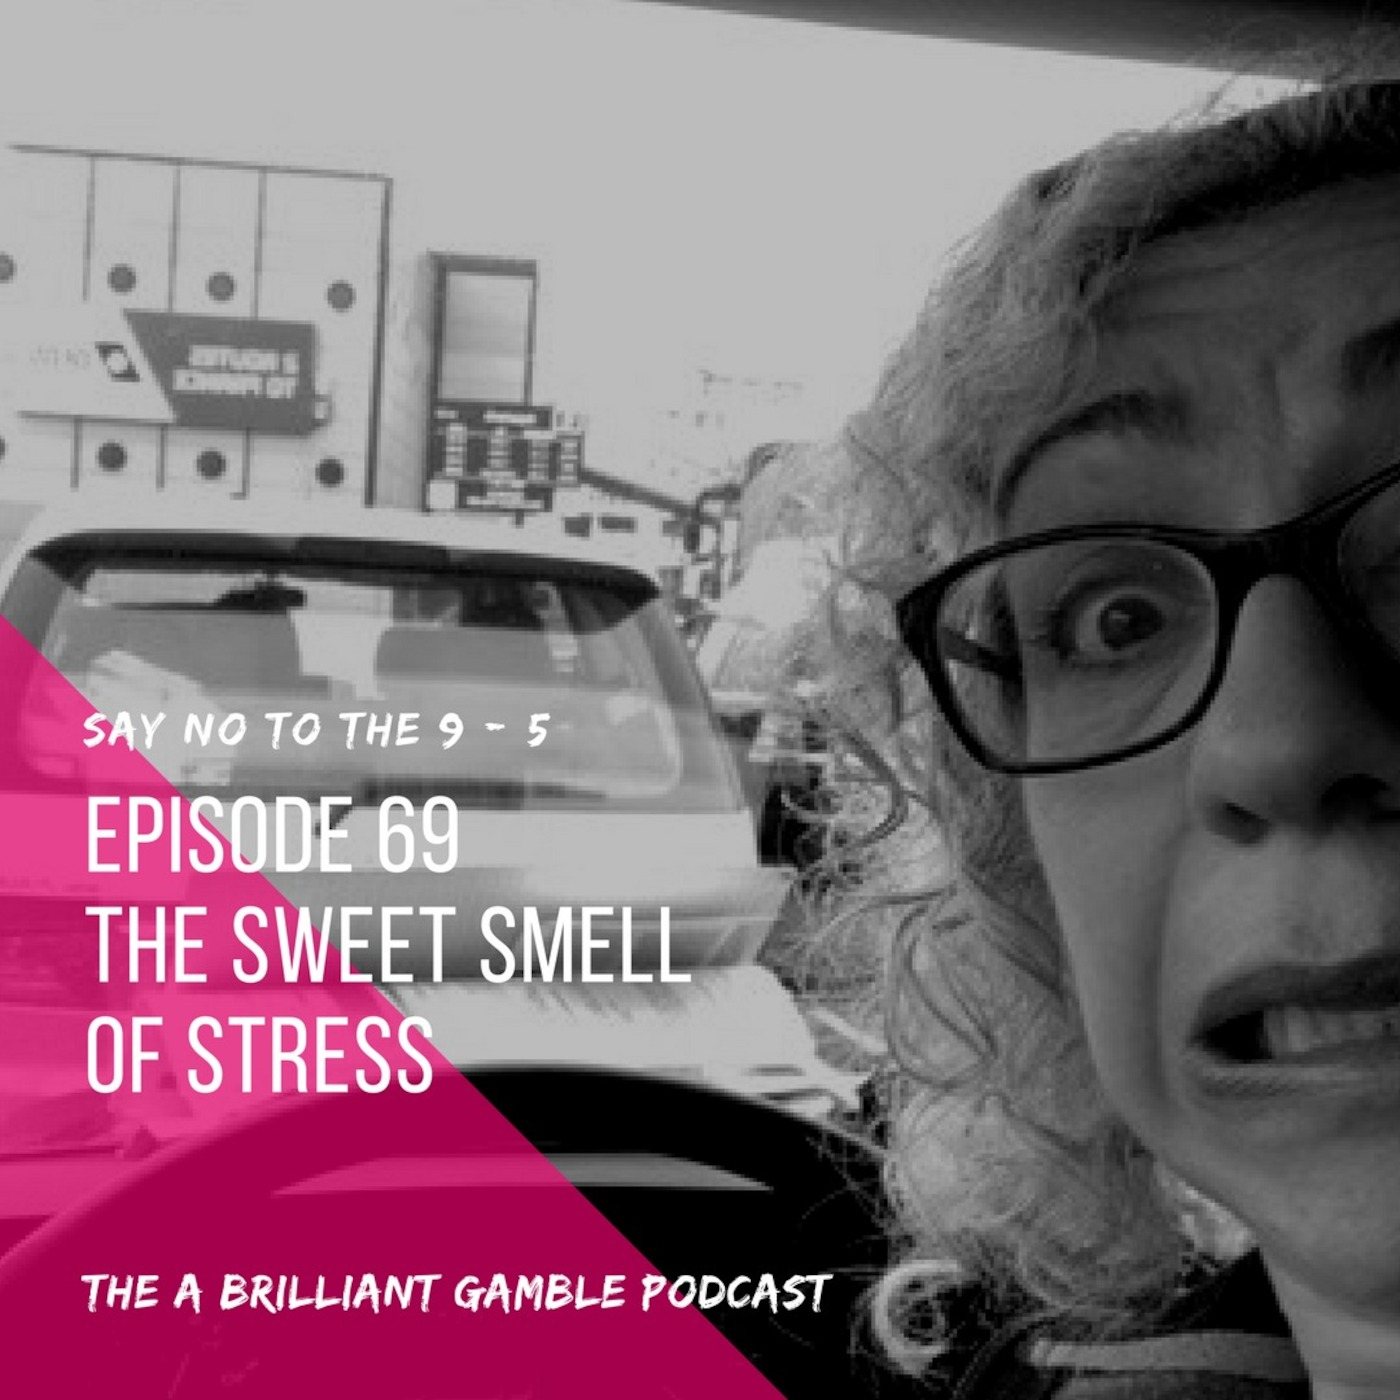 Episode 69: The Sweet Smell of Stress